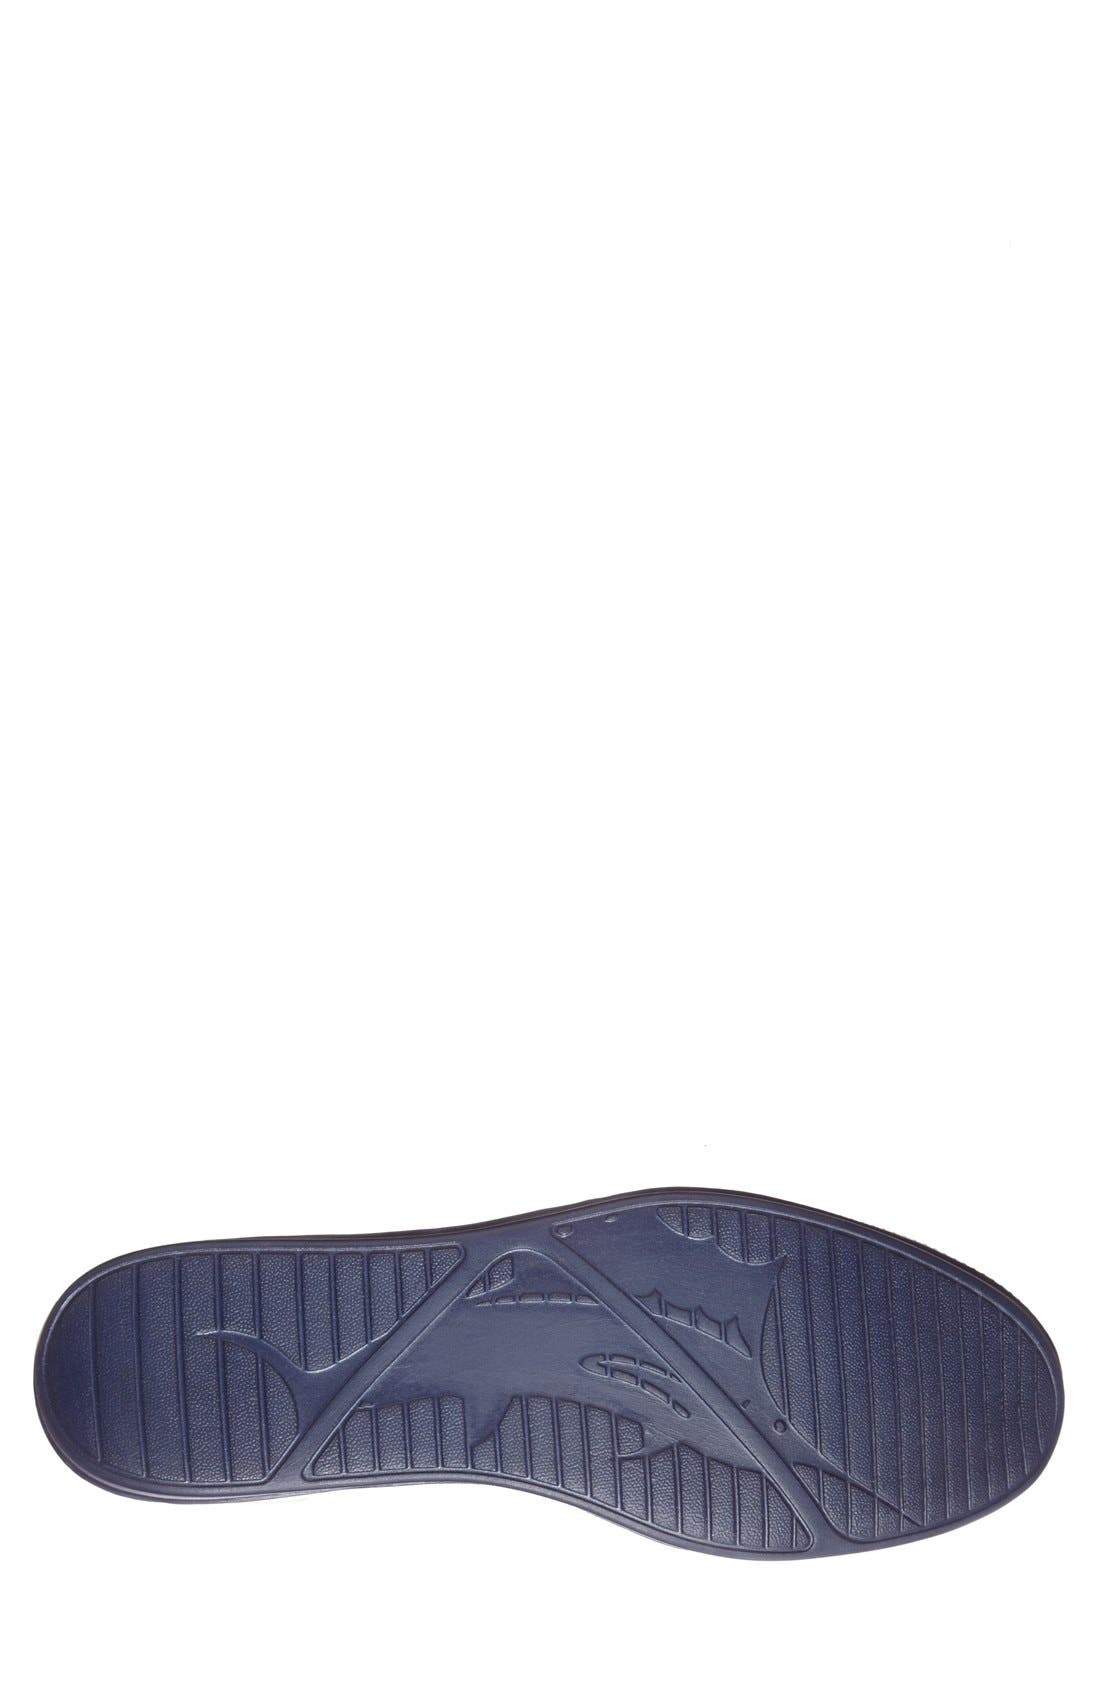 TOMMY BAHAMA,                             'Relaxology Collection - Roaderick' Sneaker,                             Alternate thumbnail 2, color,                             100